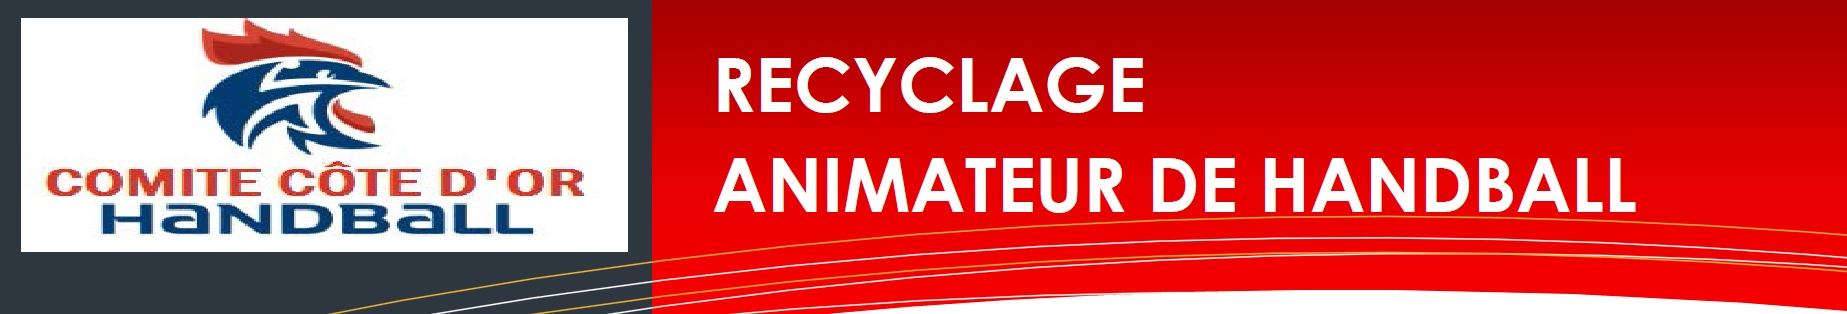 Recyclage animateur hb 1